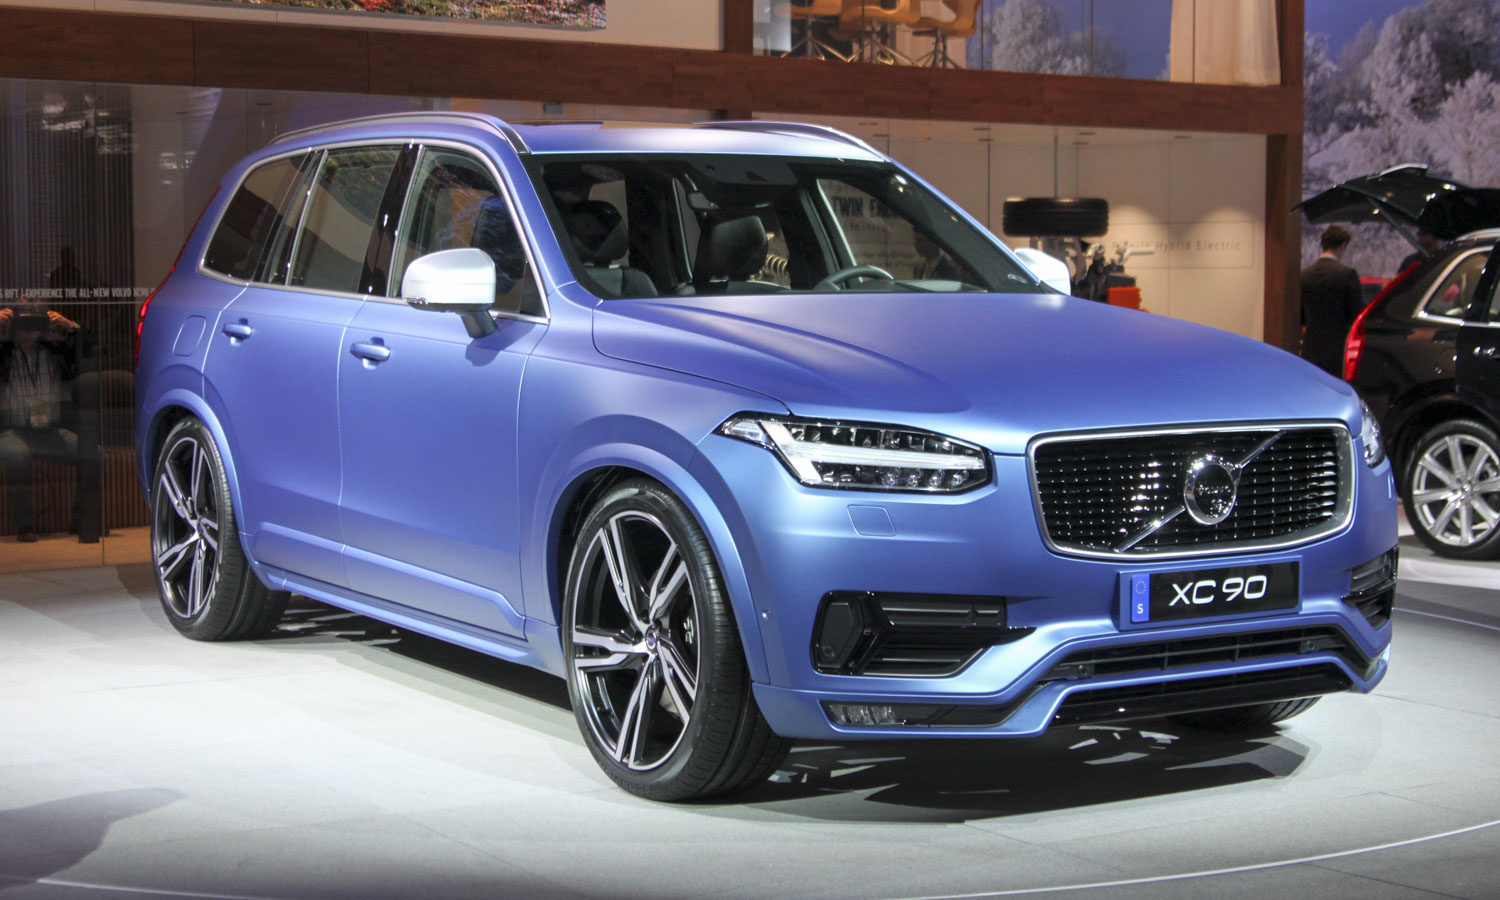 Volvo XC90 R-Design (c) Perry Stern